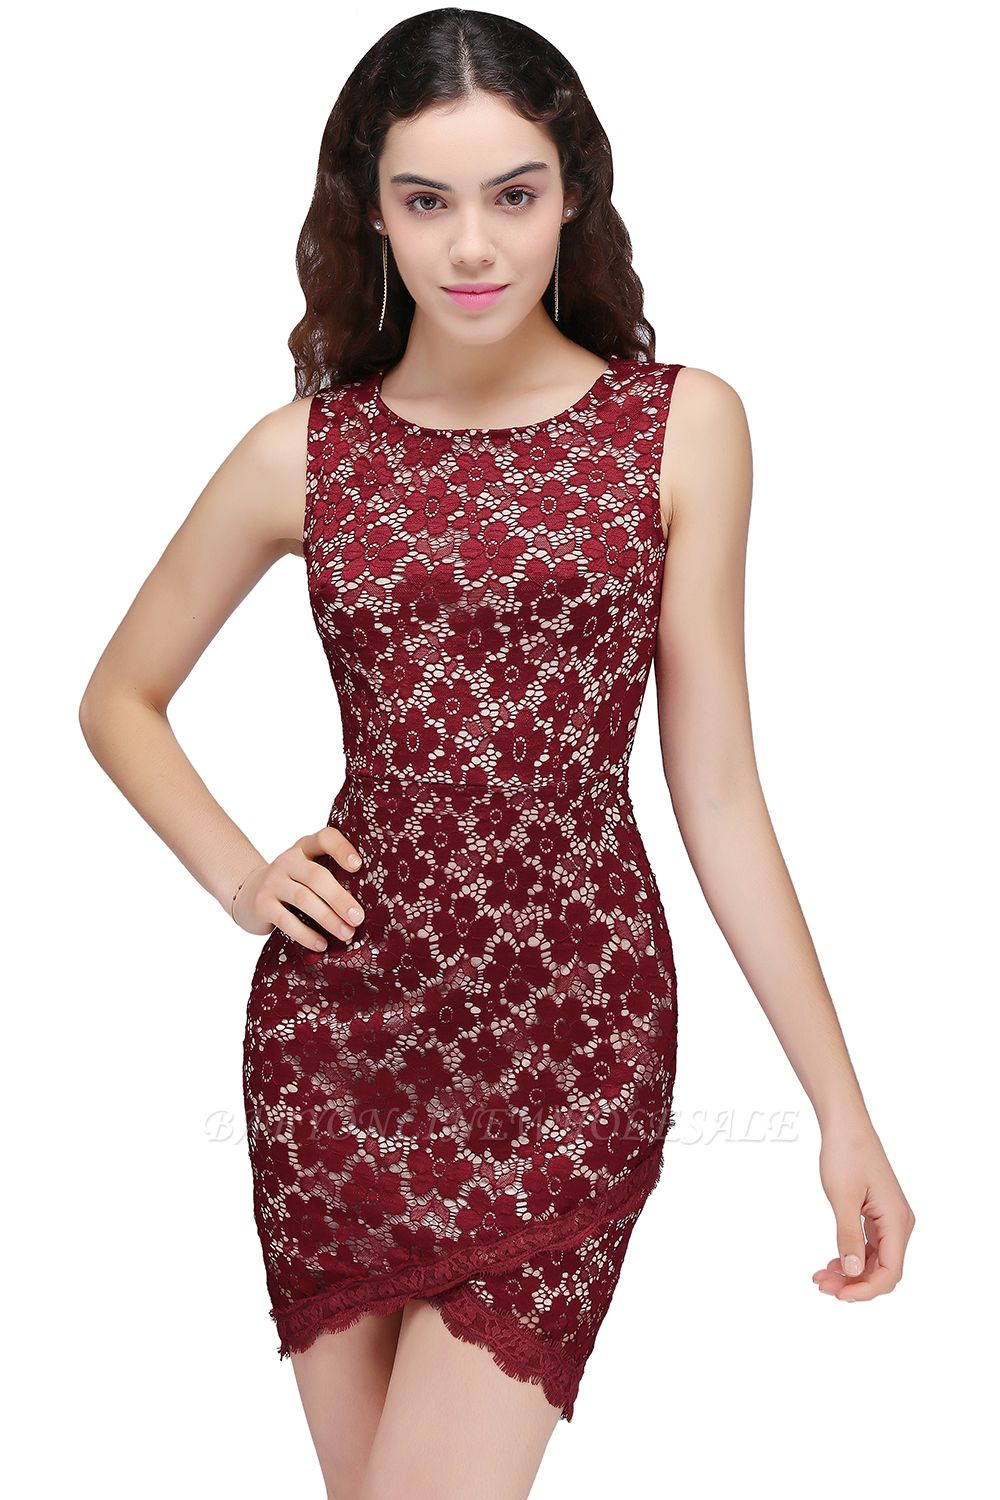 BRILEY | Bodycon Round Neck Short Lace Burgundy Homecoming Dresses